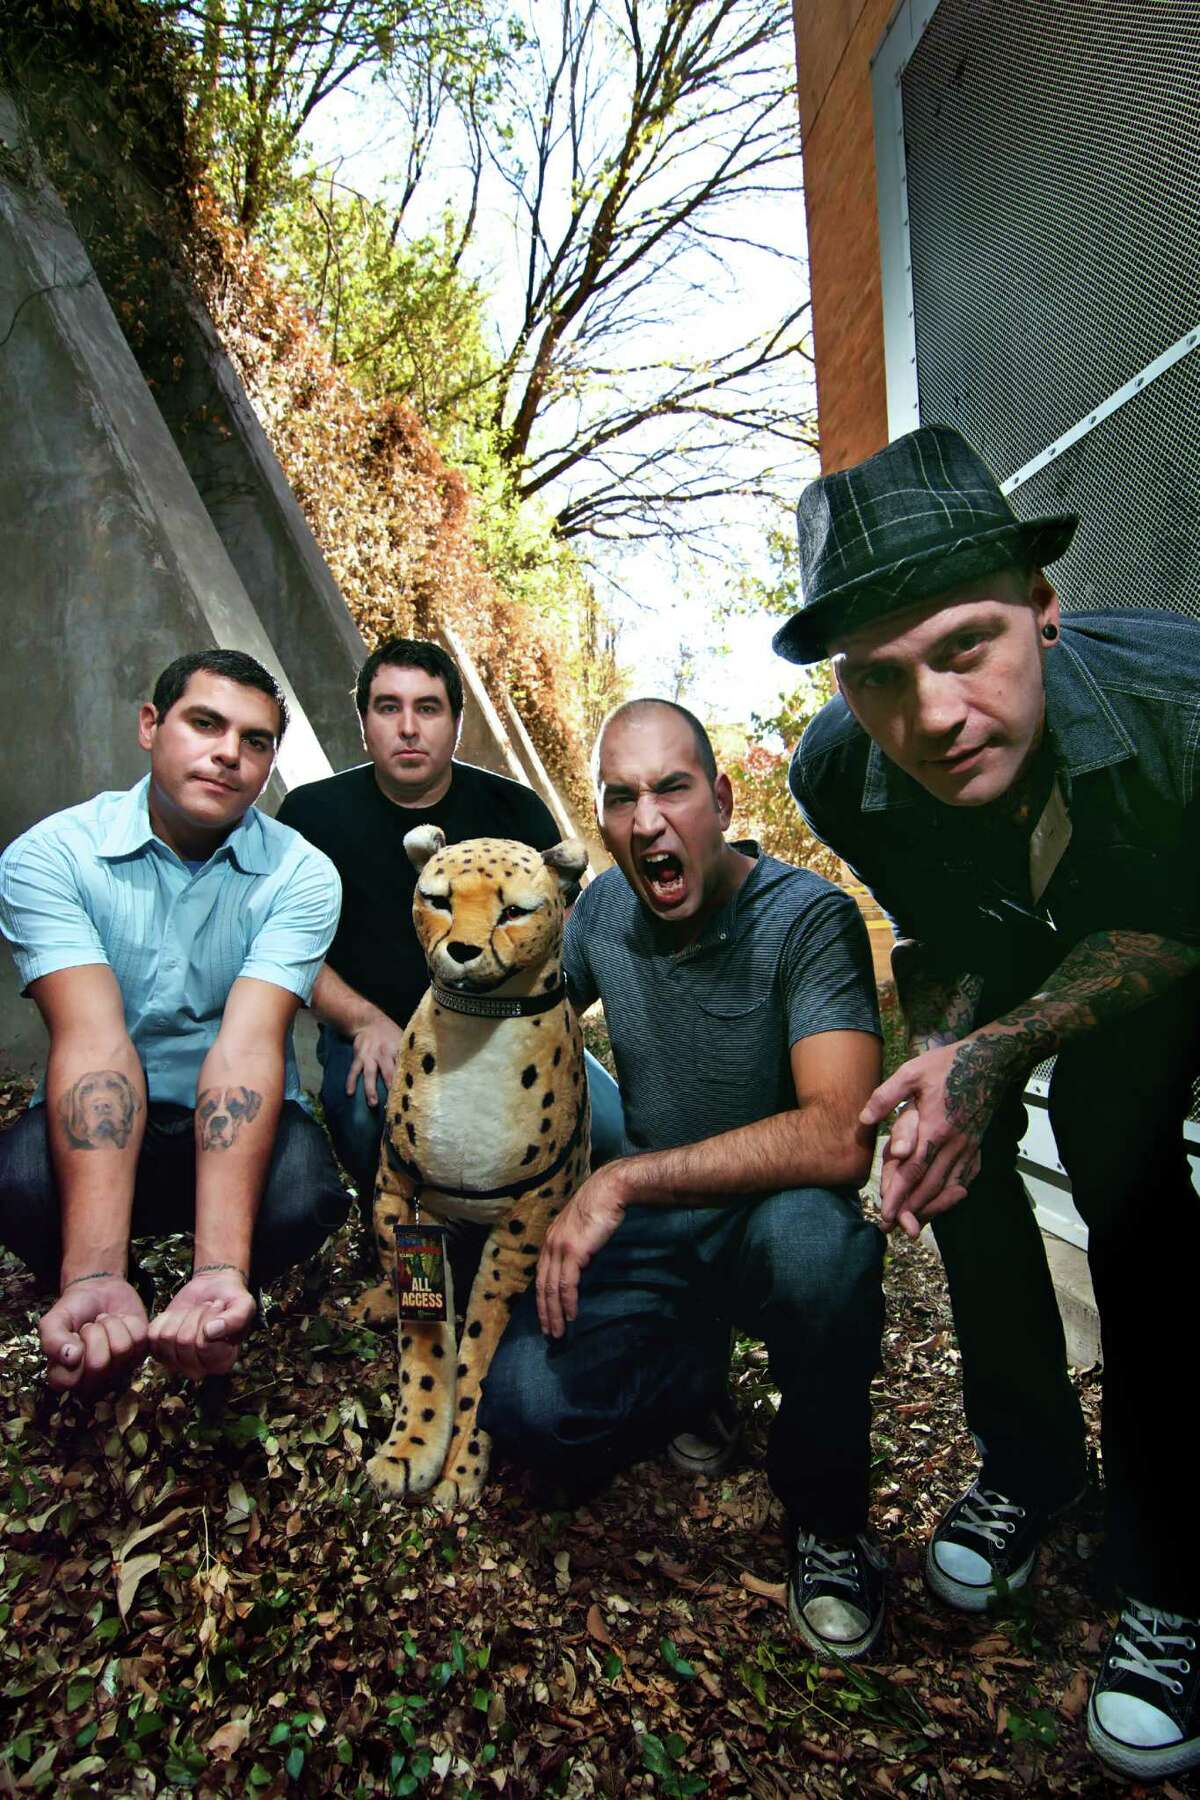 Alien Ant Farm plays the The Gig in Beaumont on Saturday, Oct. 13. Doors open at 8 p.m.